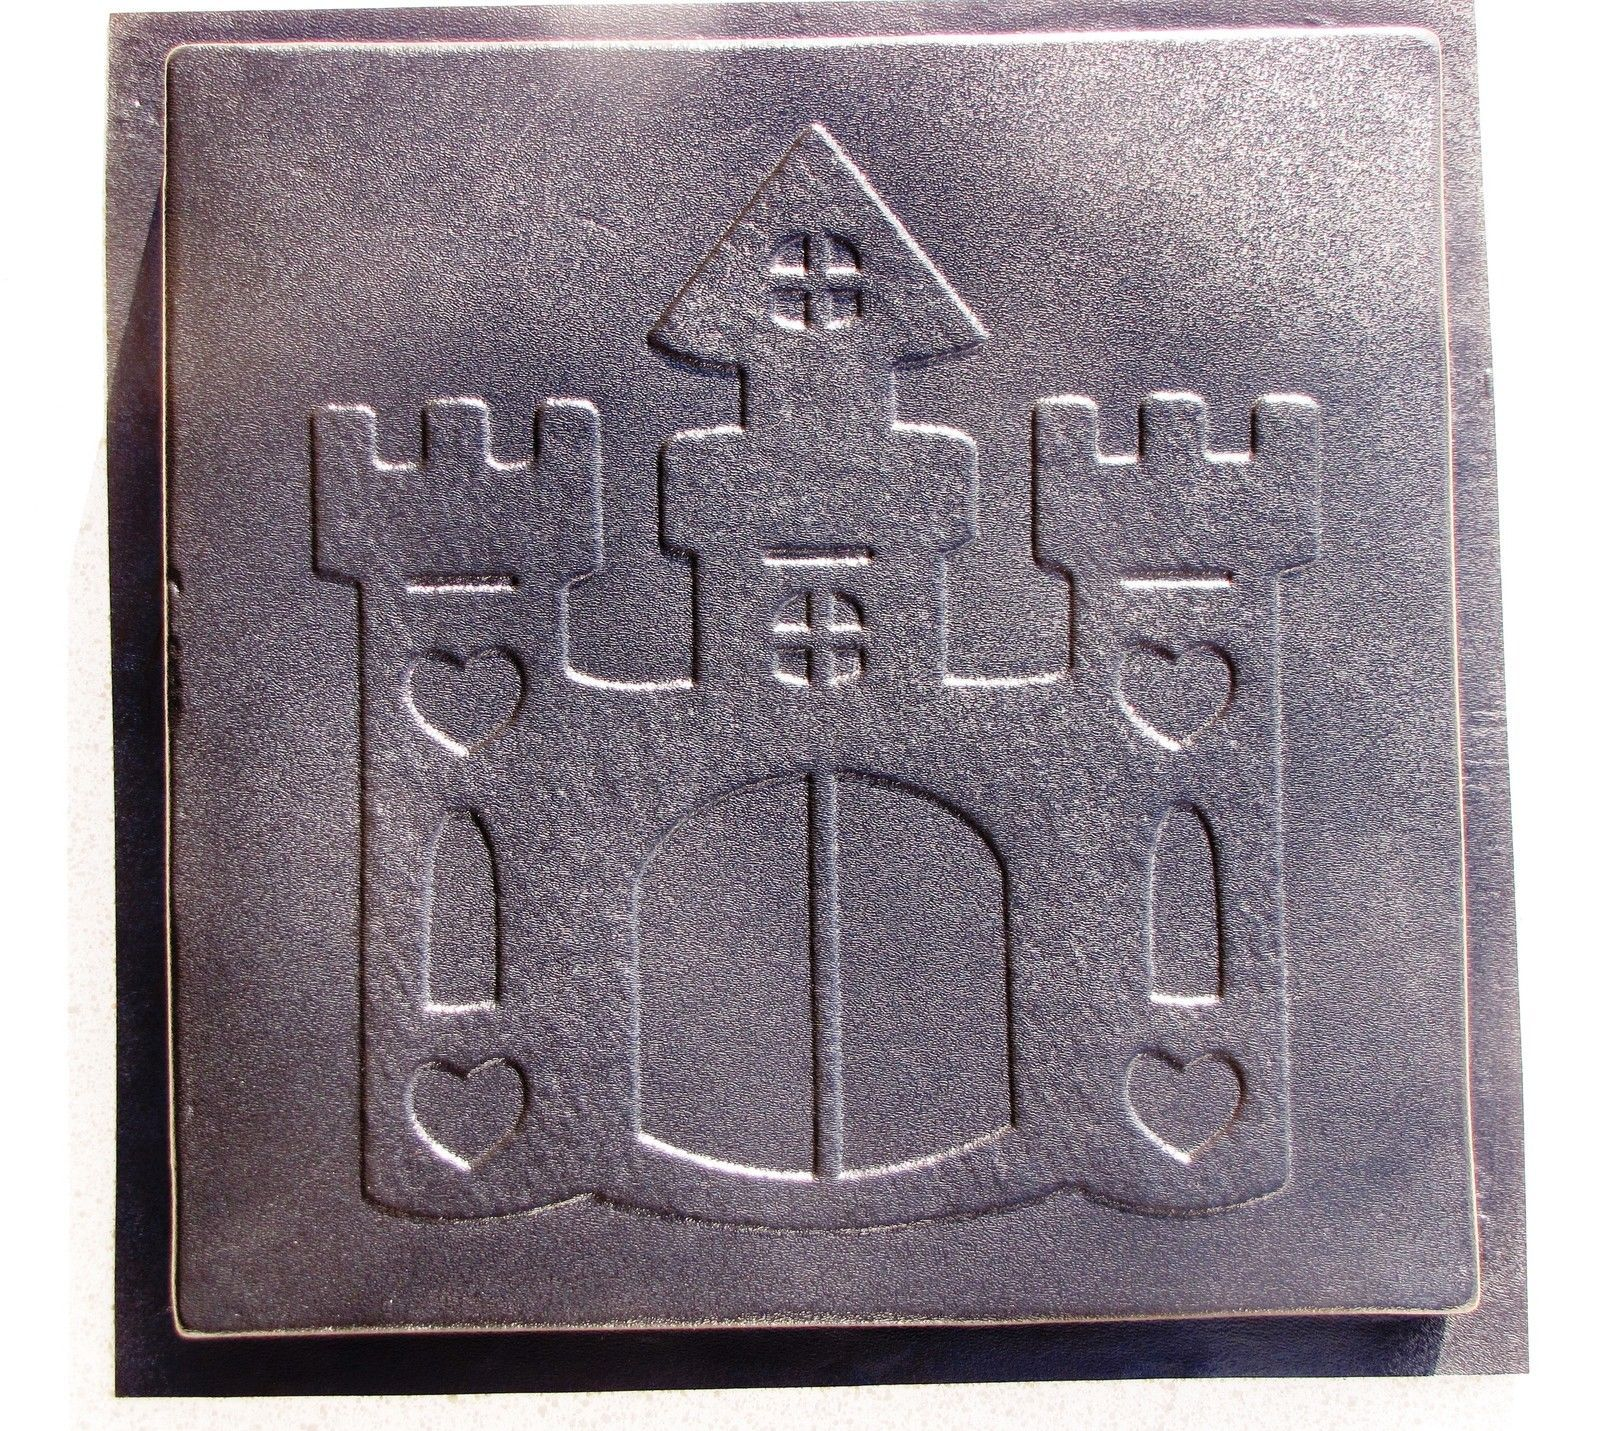 Whimsical Castle Stepping Stone Mold #2 Use Concrete Make 18x18 Stones For $2 Ea